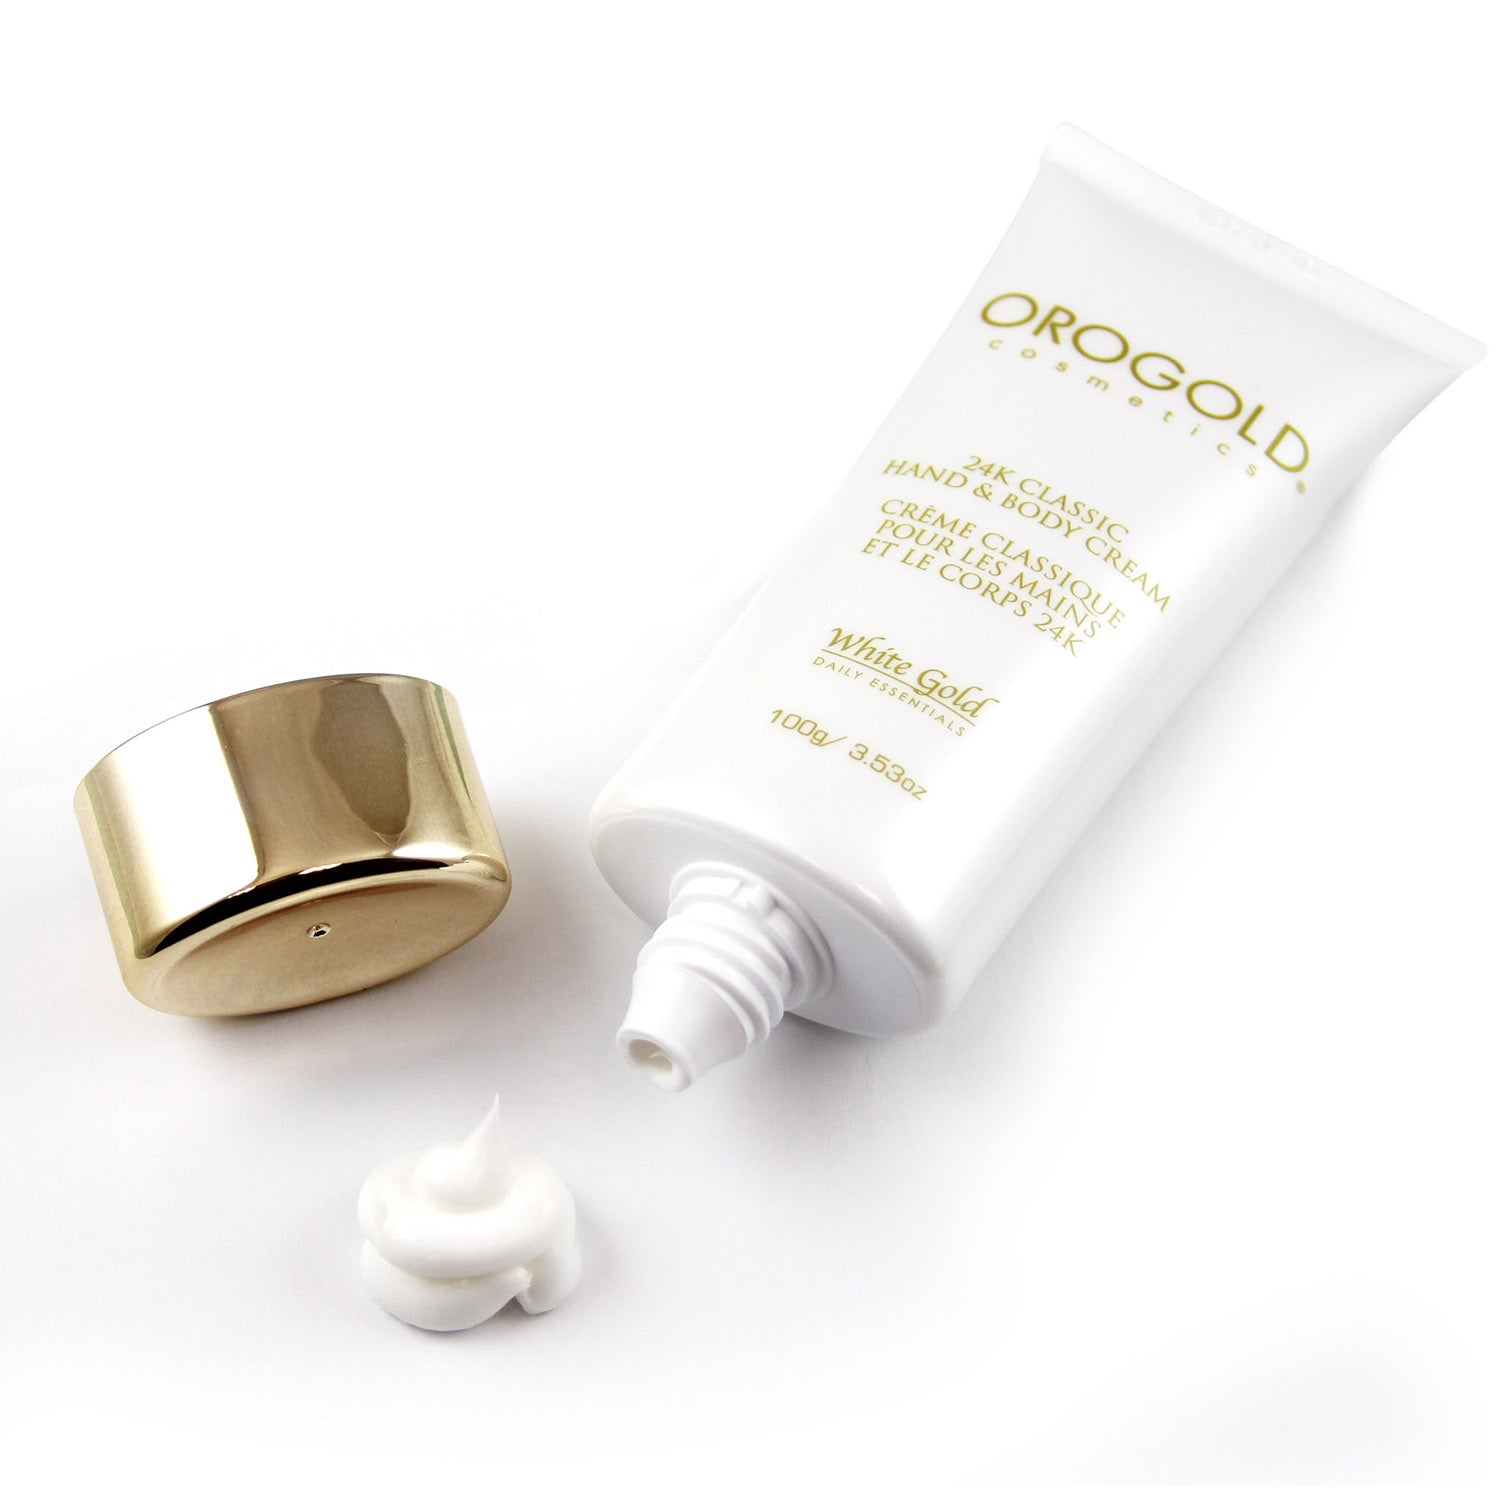 orogold hand moisturizer and body moisturizer